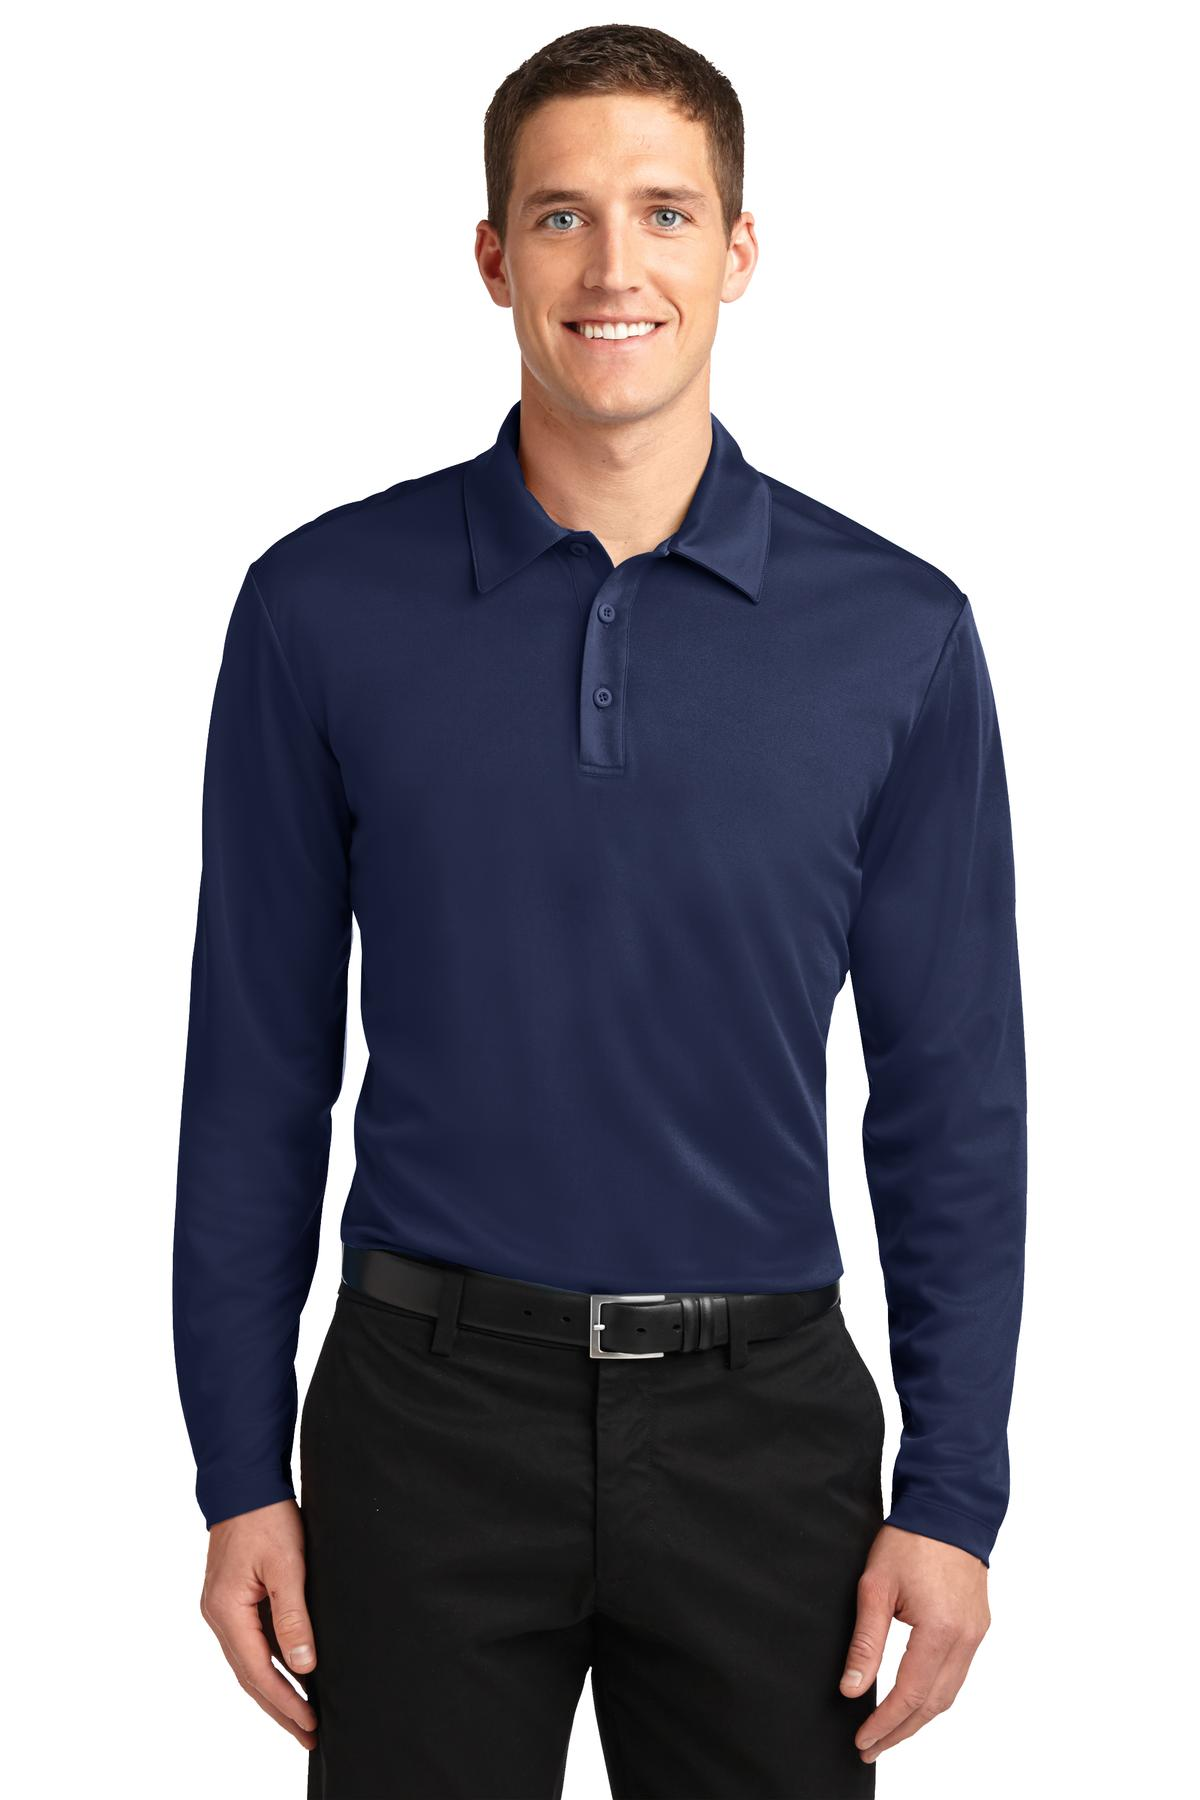 Grey Smoke Port Authority Cotton Touch Performance Polo.